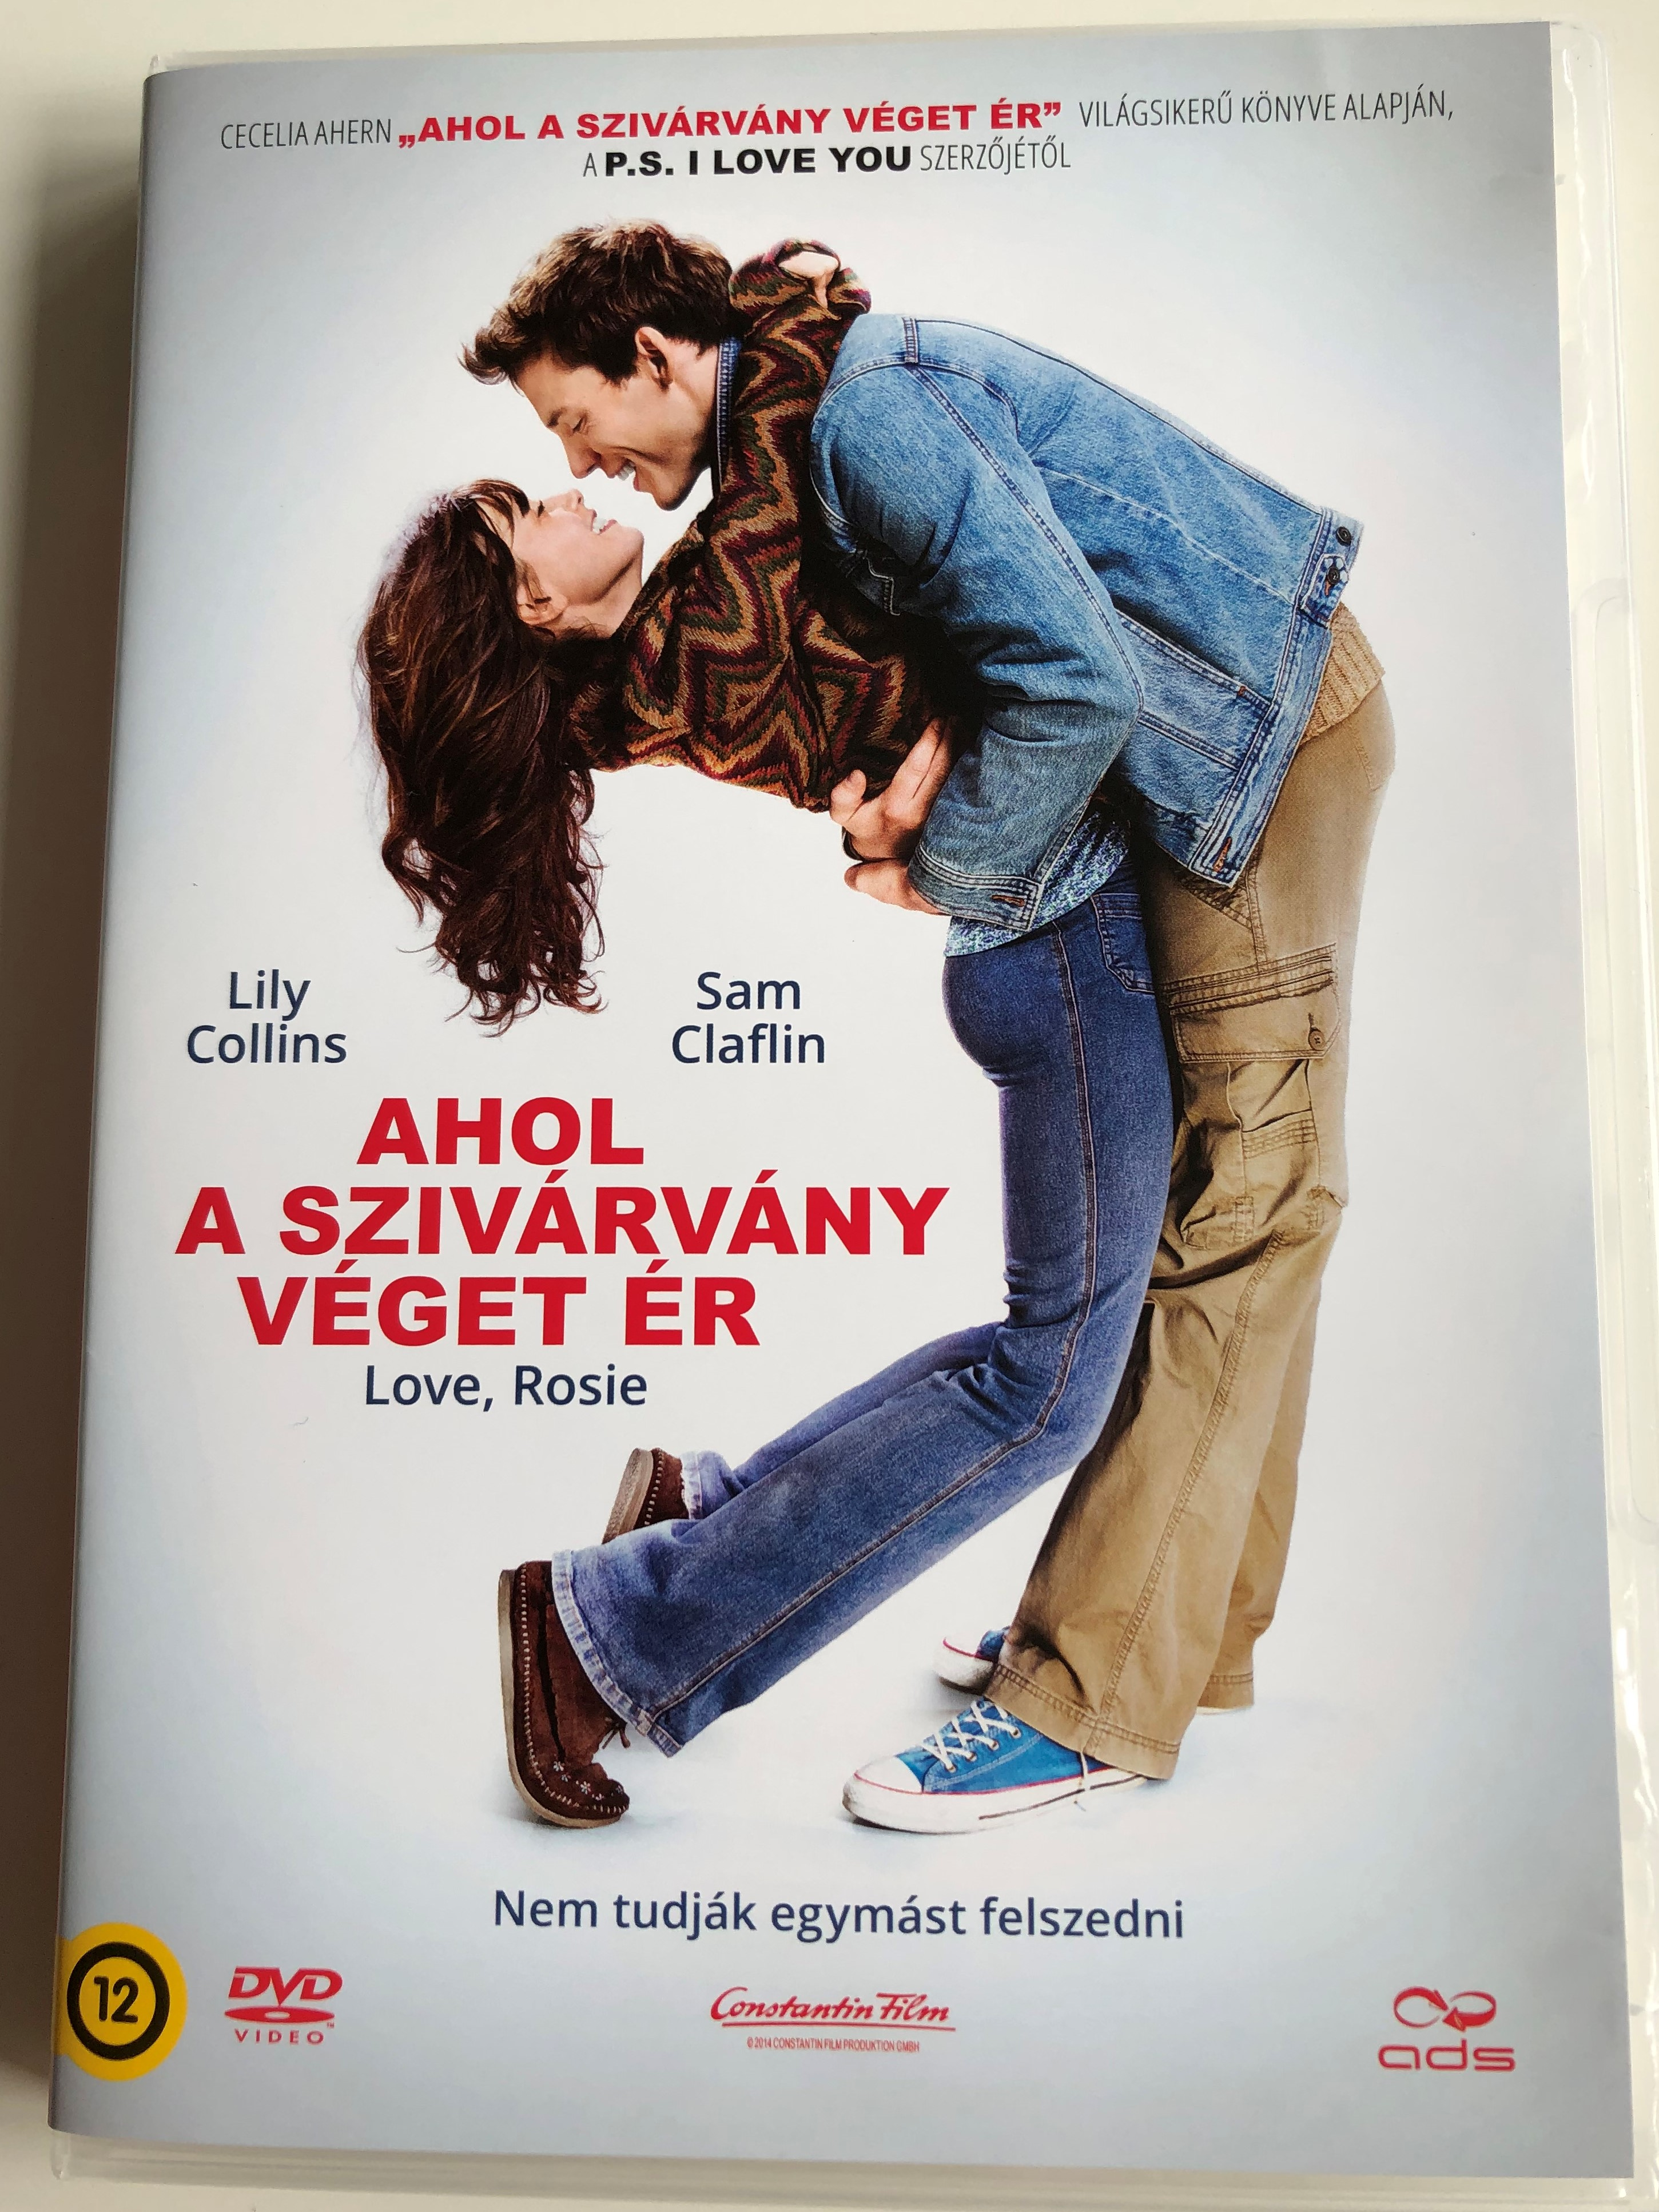 ahol-a-sziv-rv-ny-v-get-r-dvd-2004-love-rosie-directed-by-christian-ditter-starring-lily-collins-sam-claflin-1-.jpg